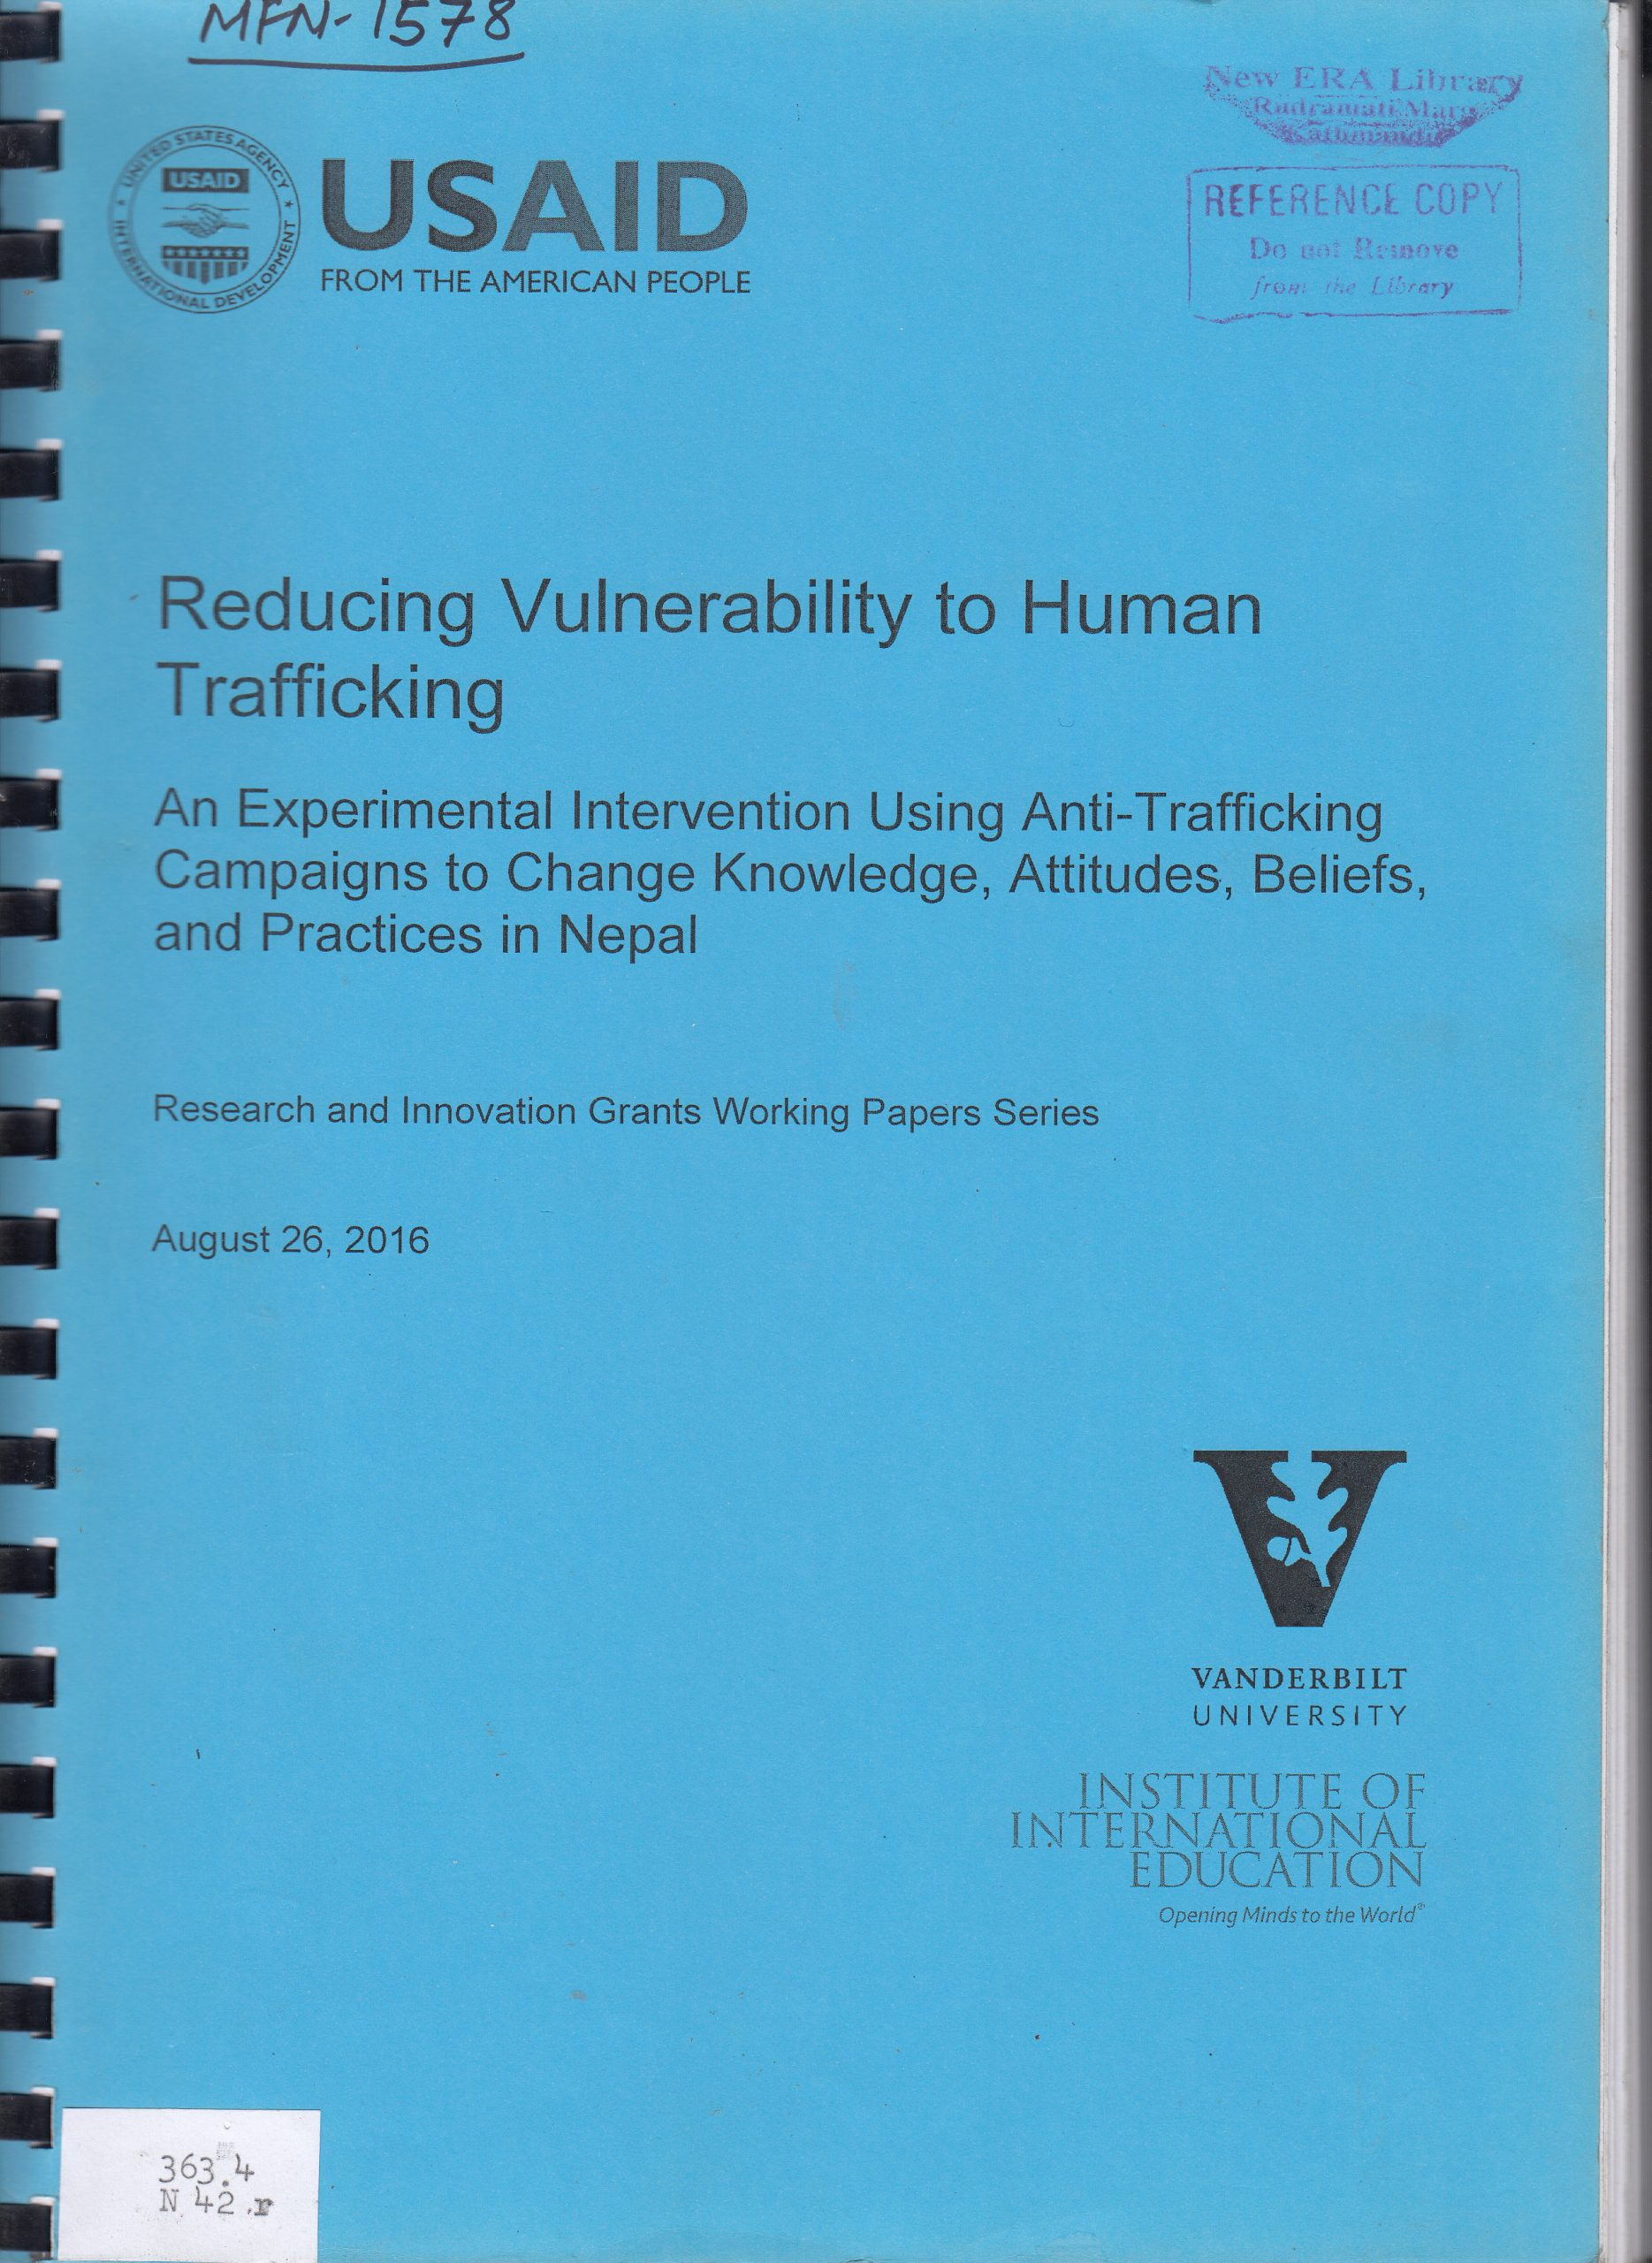 Reducing Vulnerability to Human Trafficking: An Experimental Intervention Using Anti-Trafficking Campaigns to Change Knowledge, Attitude, Beliefs, and Practices in Nepal